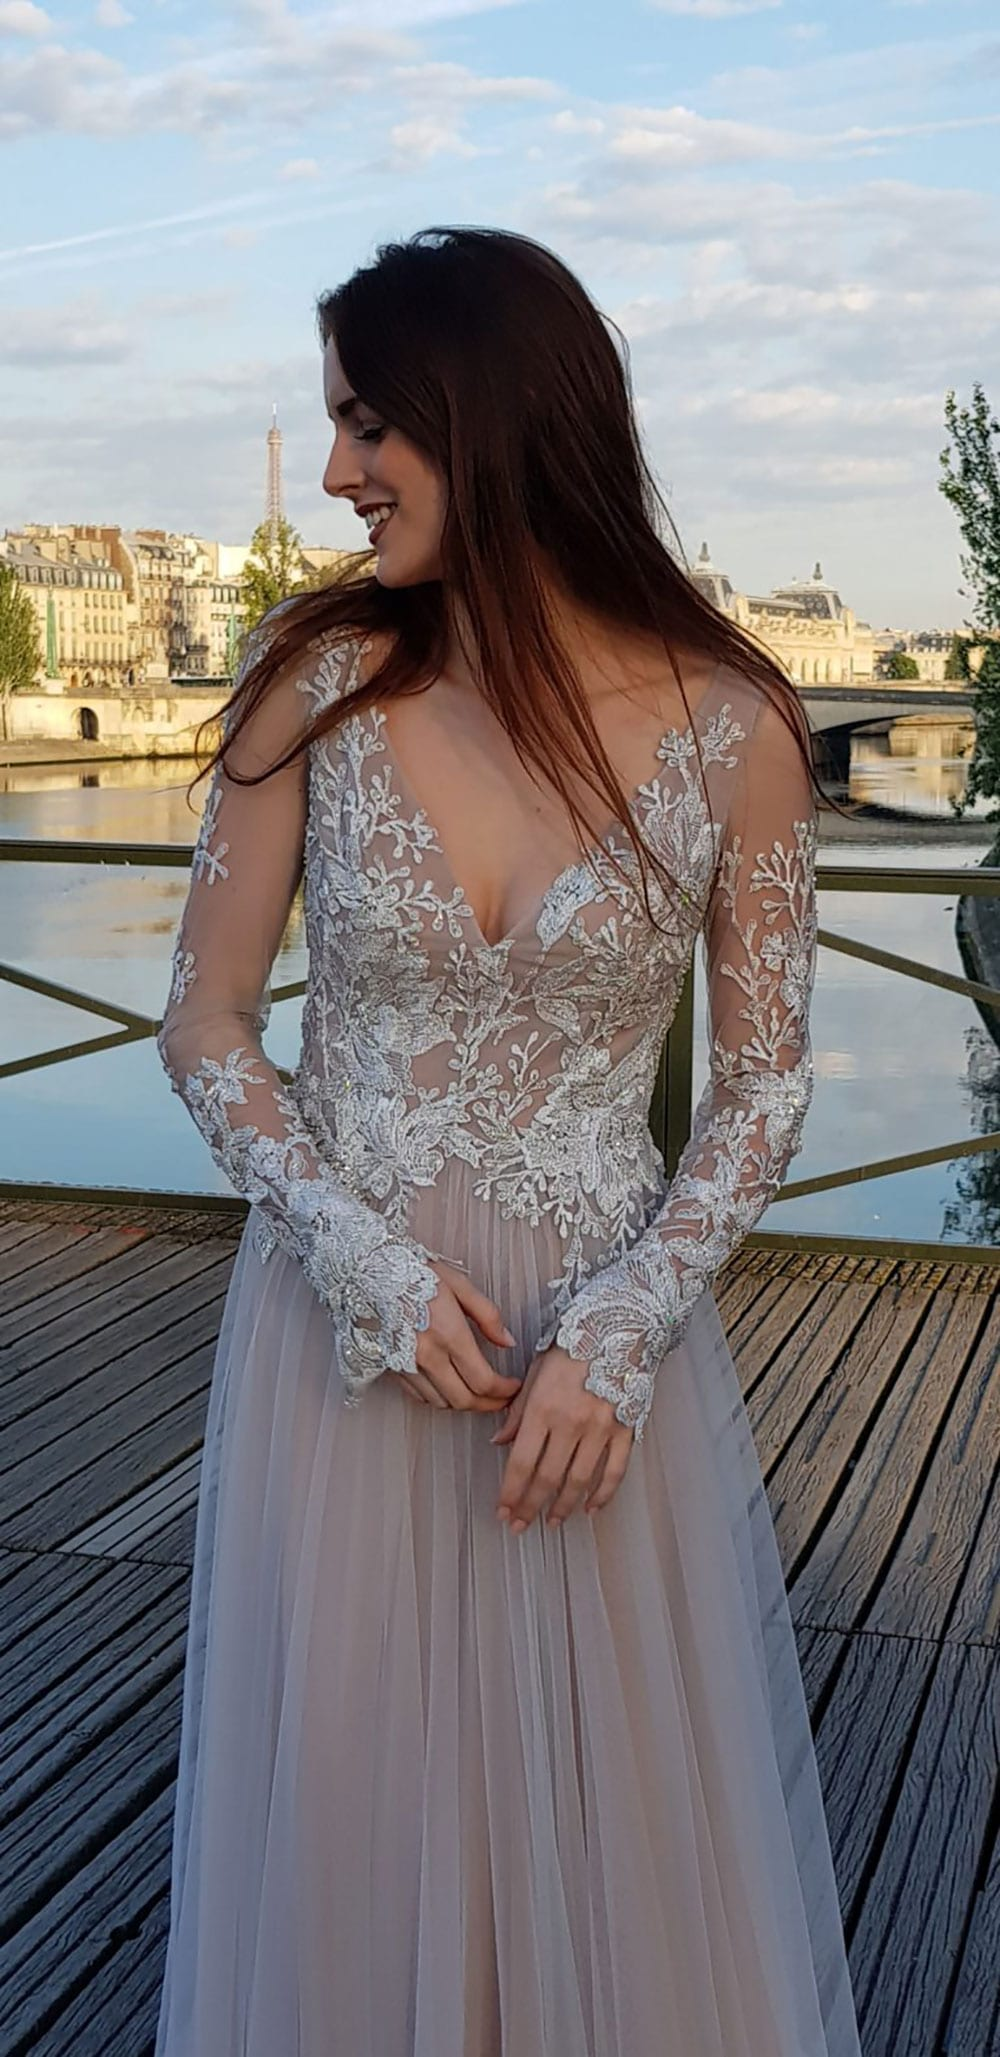 Model wearing Vinka Design Suri Wedding Dress, a Backless Silver Tulle and Lace Gown with Long Sleeves hands together in front on Paris boardwalk